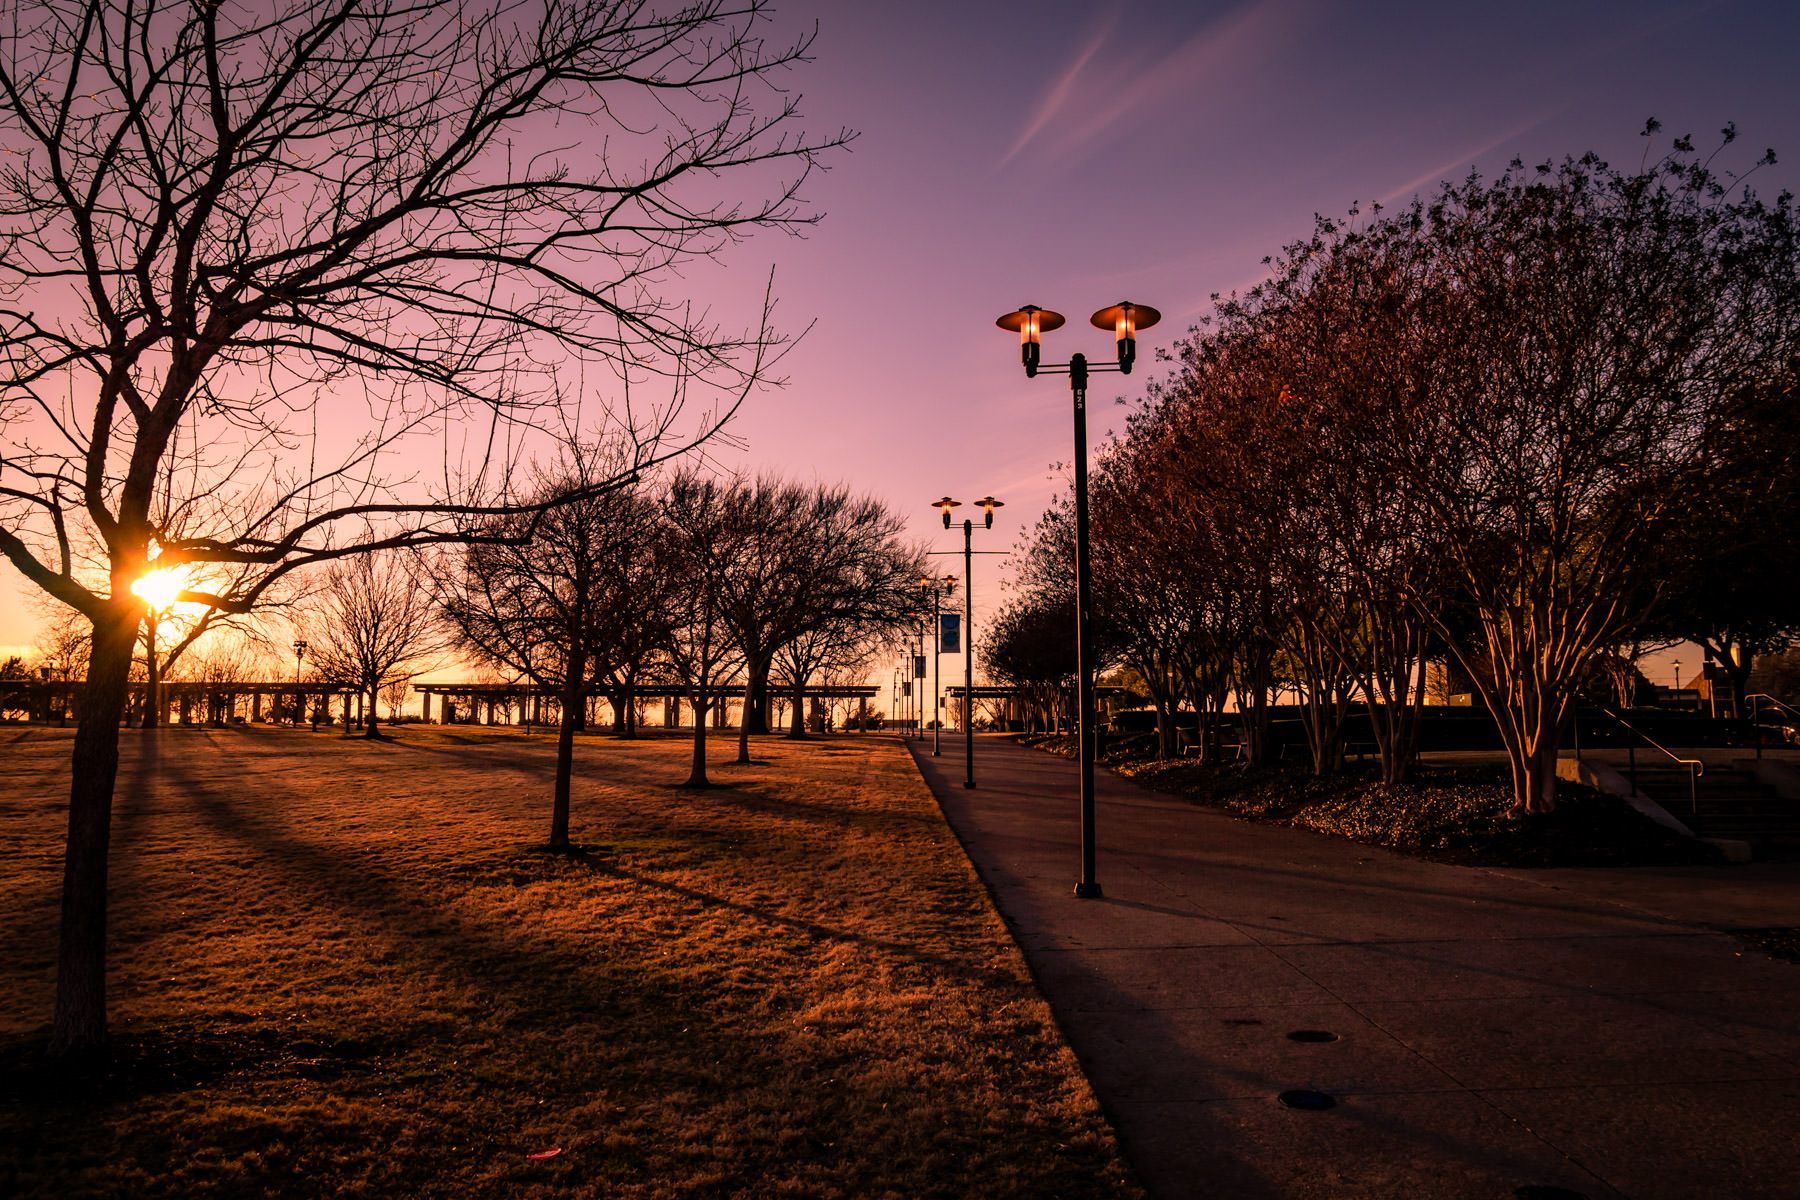 The sun sets on Addison Circle Park in Addison, Texas.